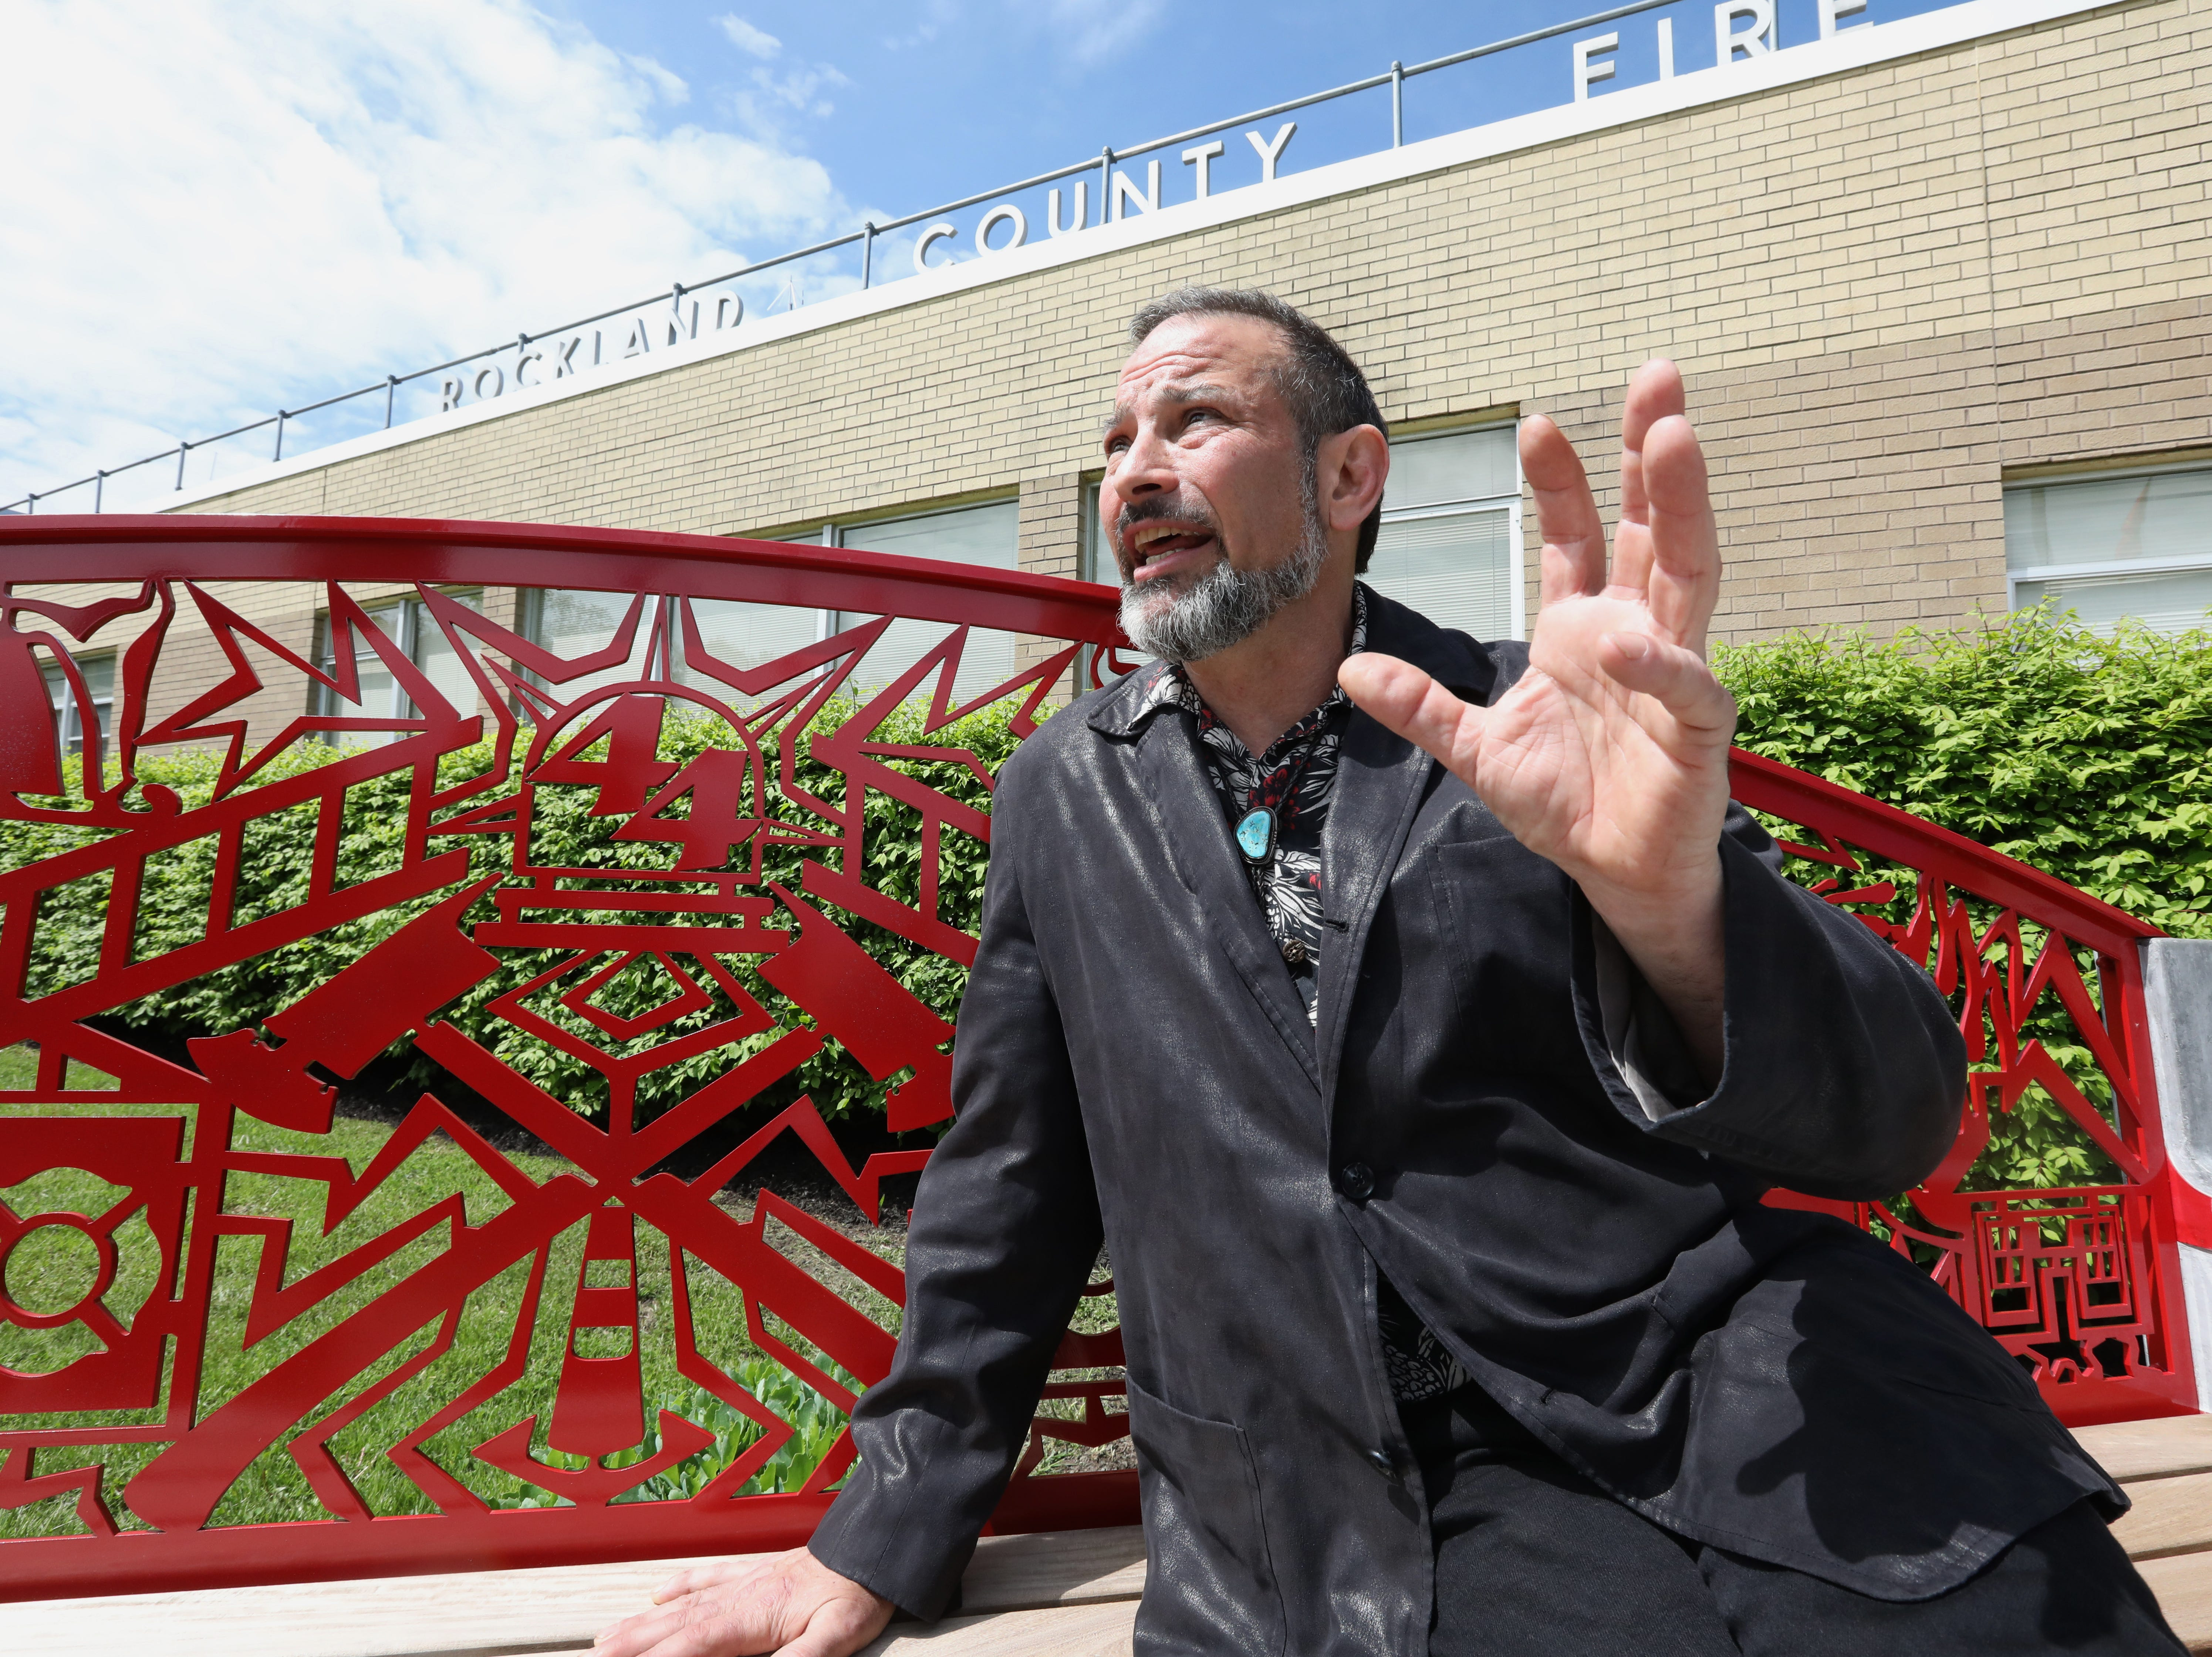 Sculptor Eric David Laxman on one of the two benches he created at the Rockland County Fire Training Center in Pomona May 8, 2019. The benches that honor Rockland's firefighters and emergency responders, were funded by the Rockland County Art in Public Places Committee.